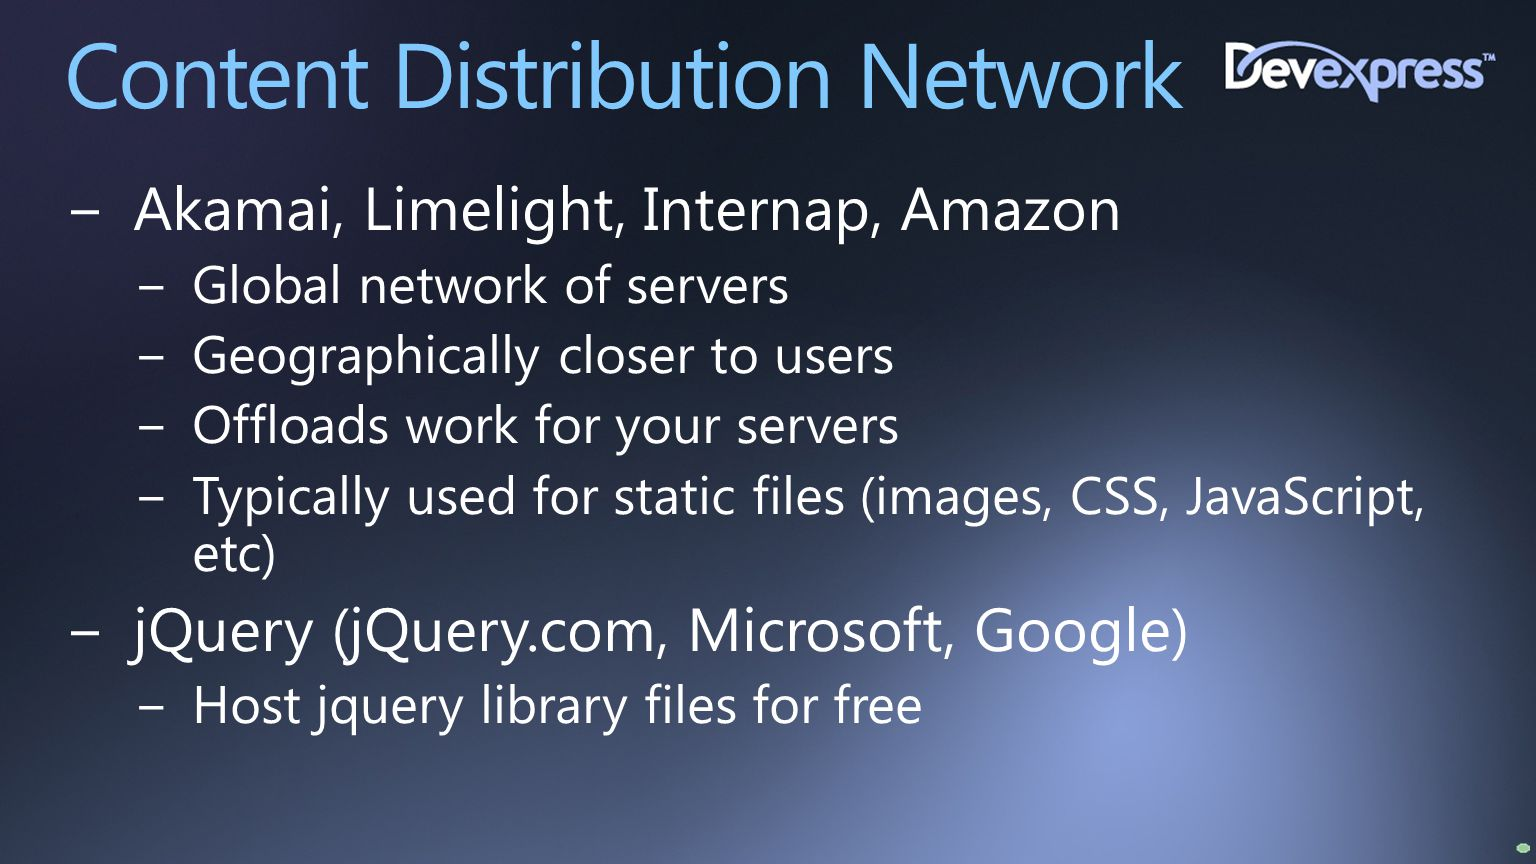 Content Distribution Network −Akamai, Limelight, Internap, Amazon −Global network of servers −Geographically closer to users −Offloads work for your s